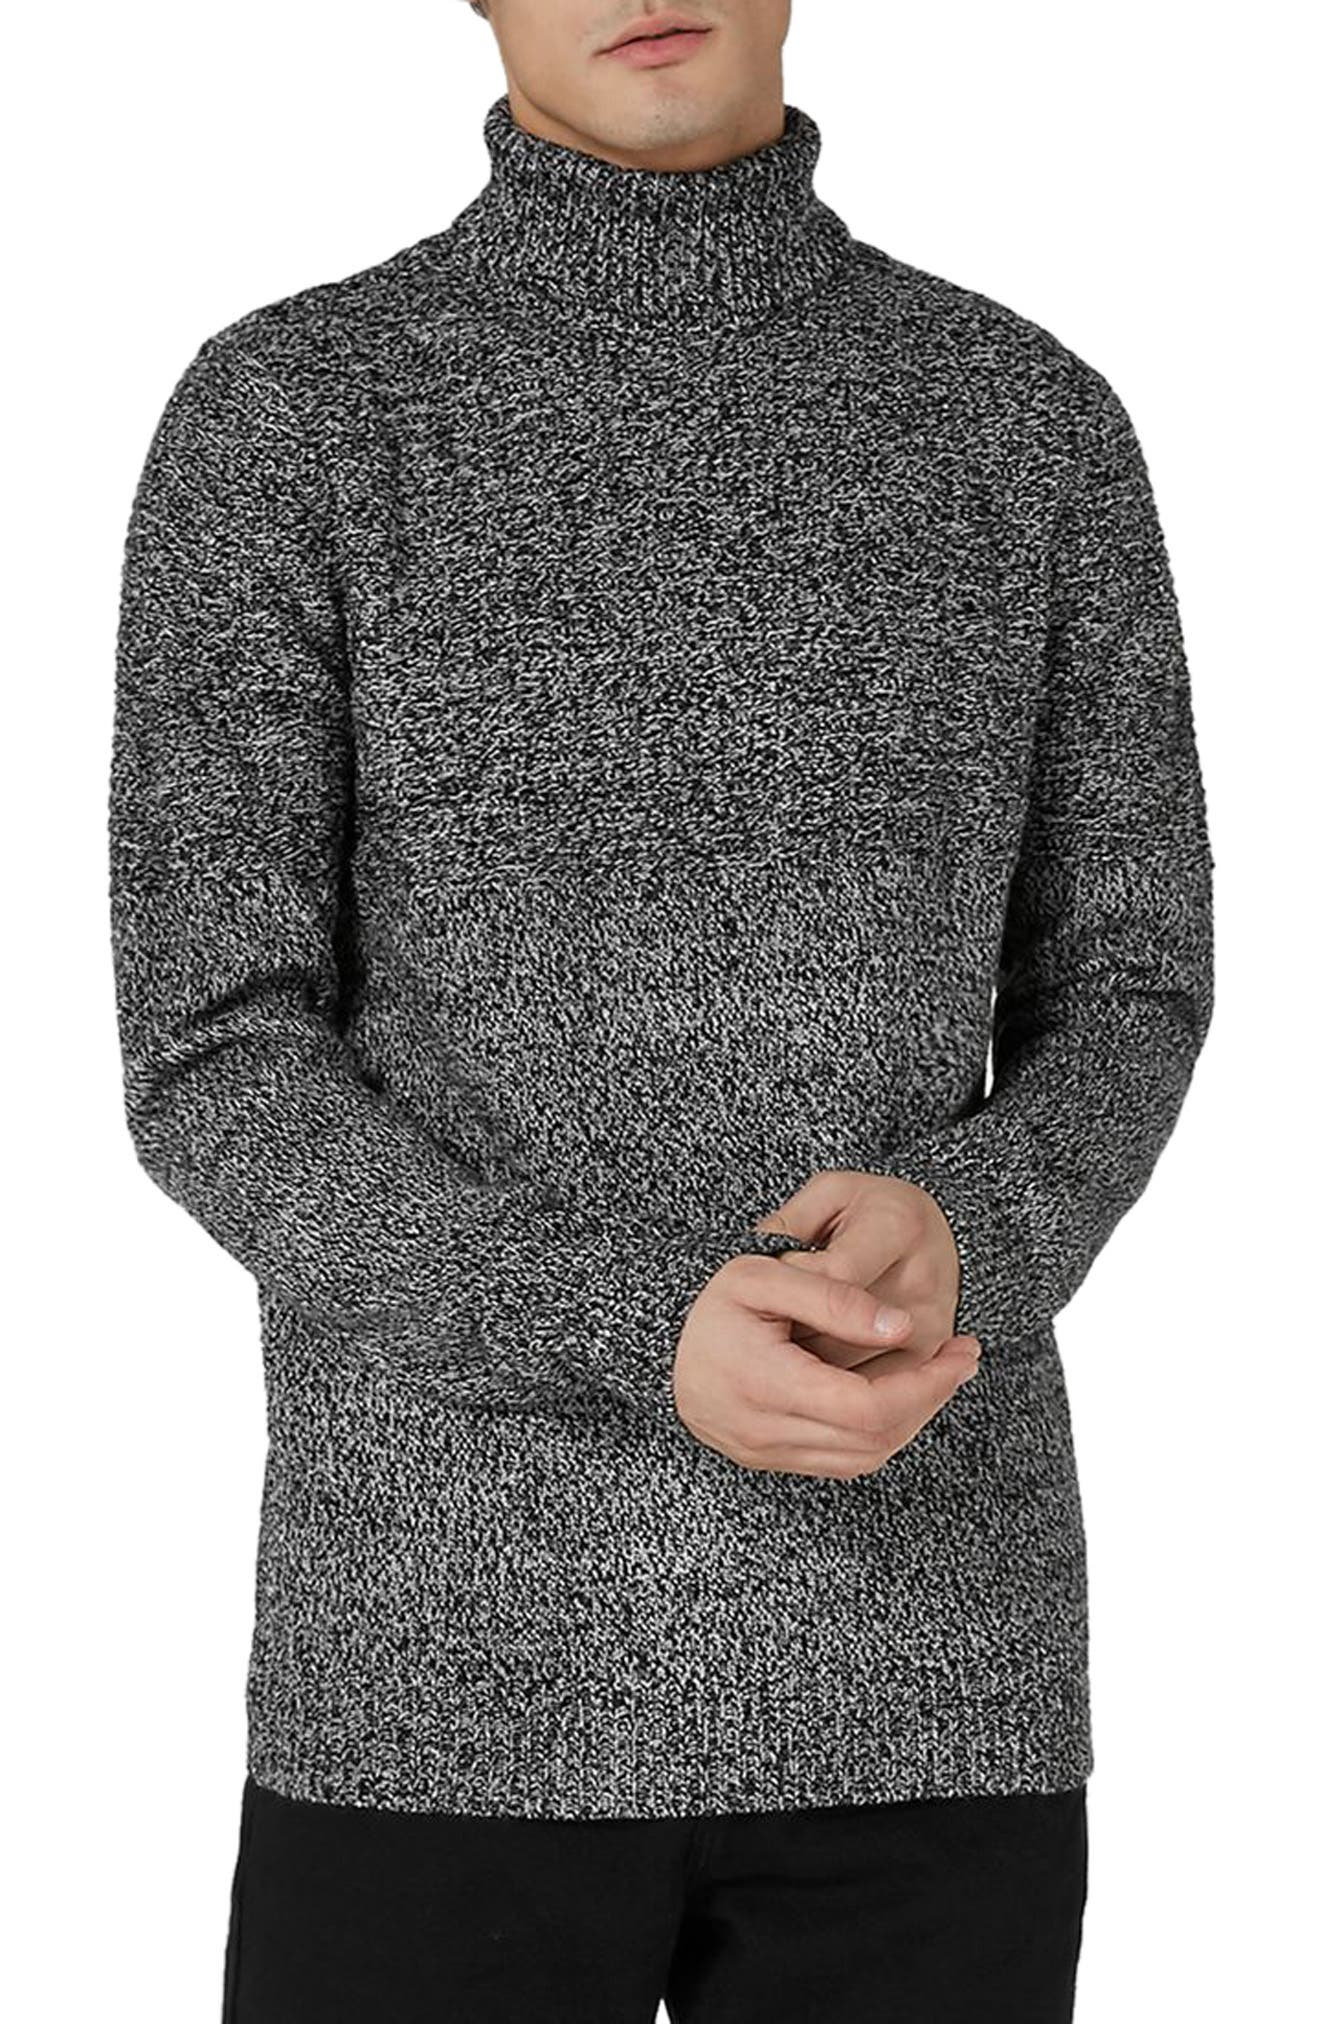 Twist Roll Neck Sweater,                             Main thumbnail 1, color,                             020